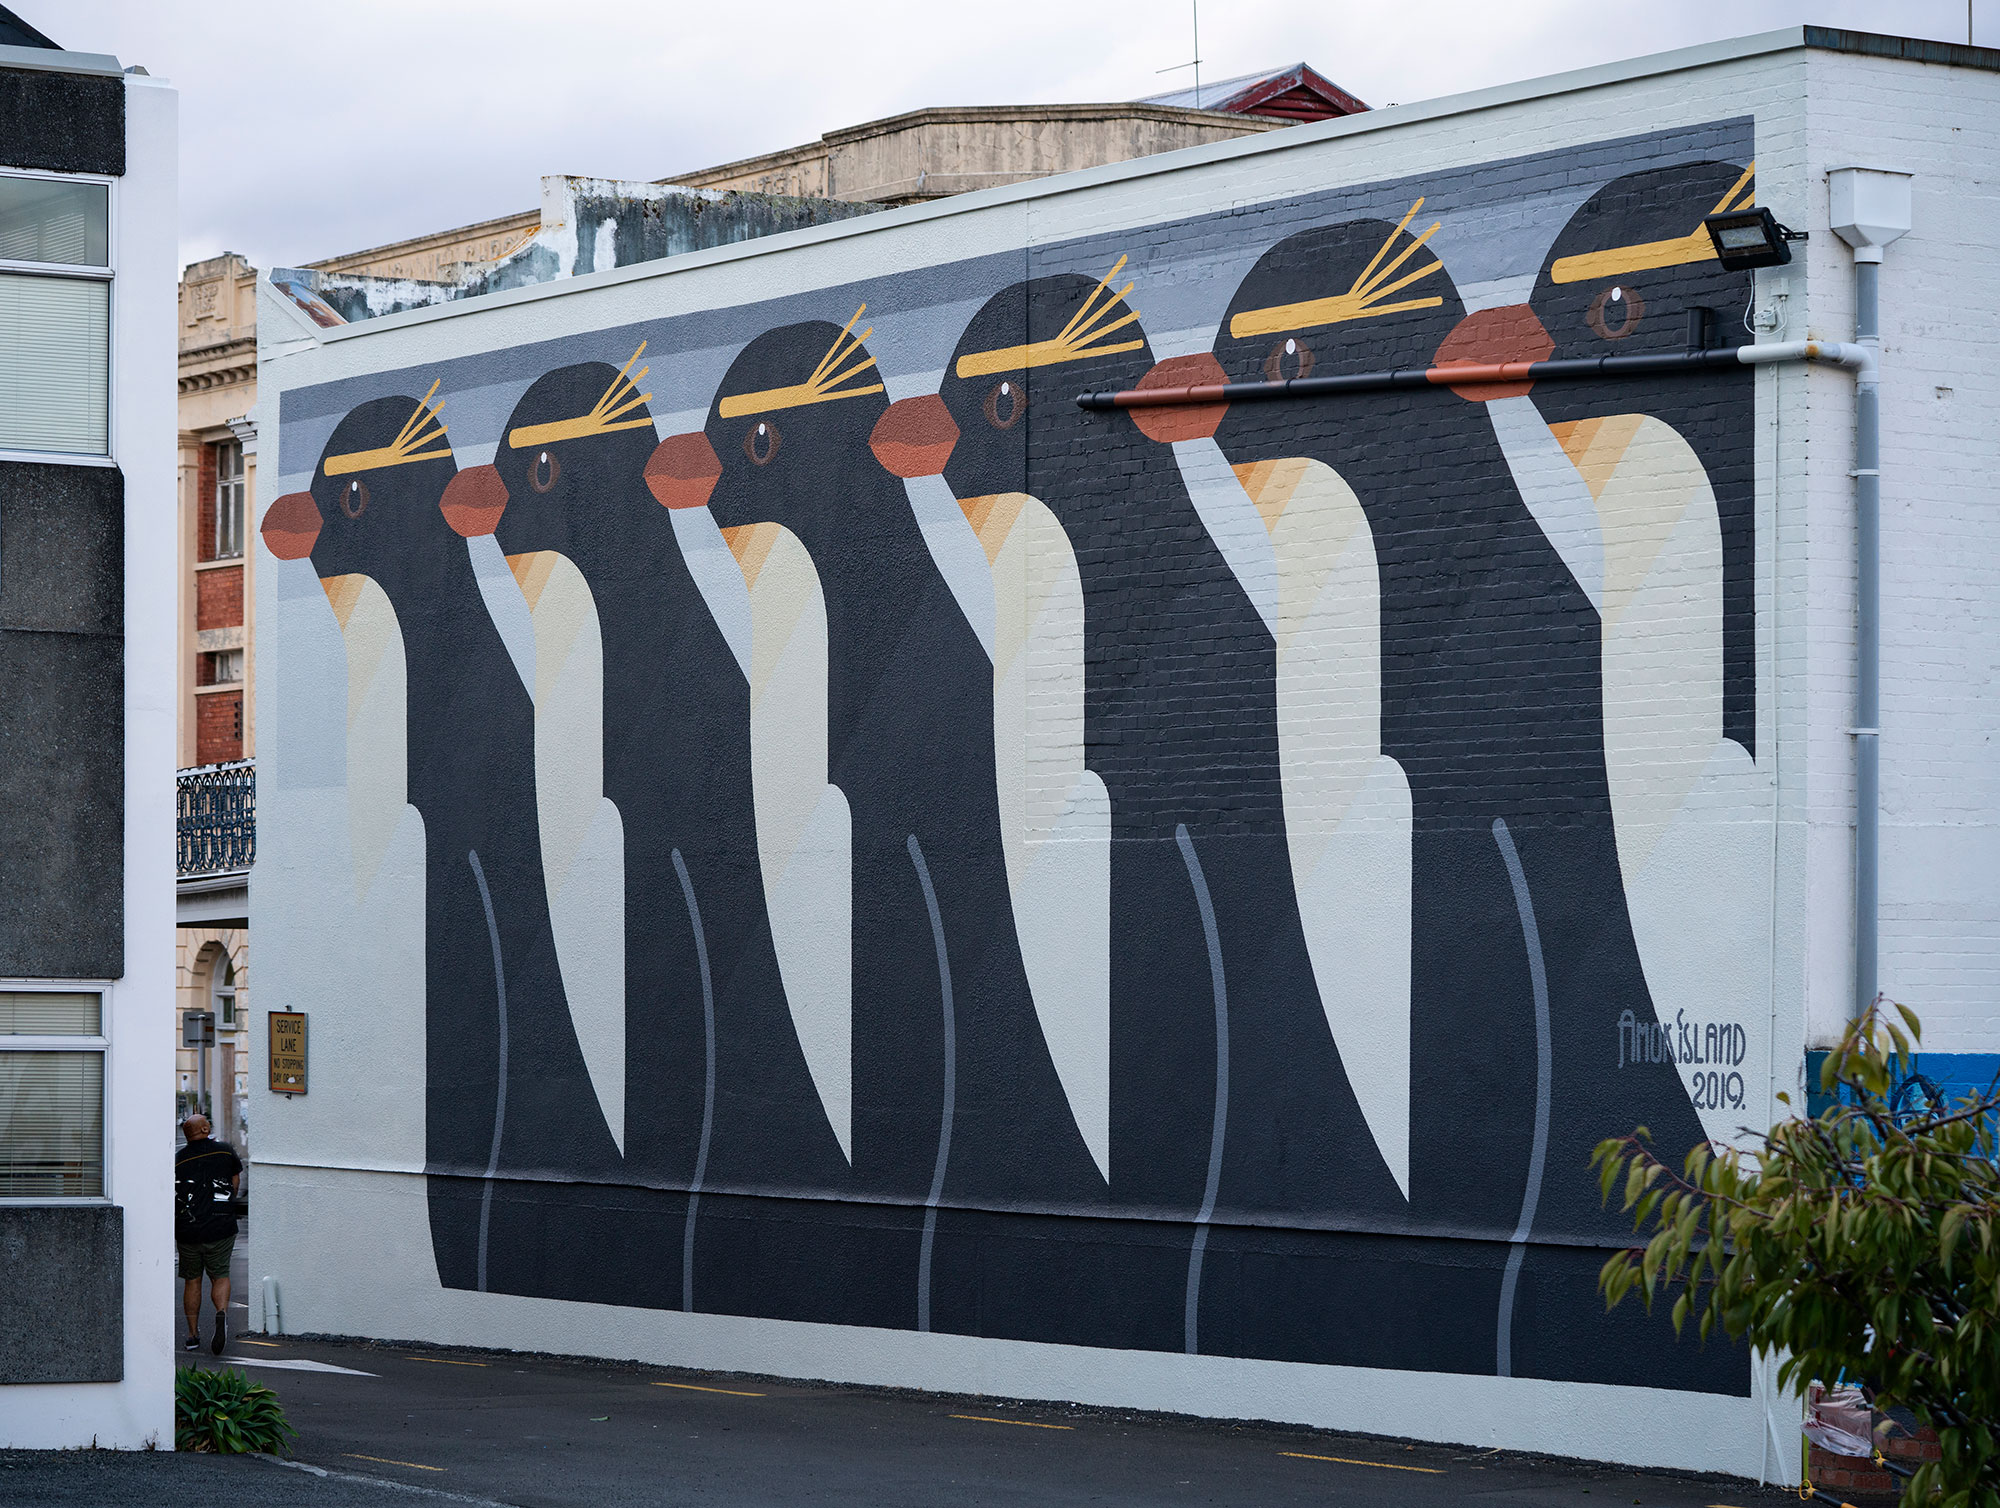 Whanganui, New Zealand 2019 'Sulphur Crested Penguins' for Whanganui Walls.